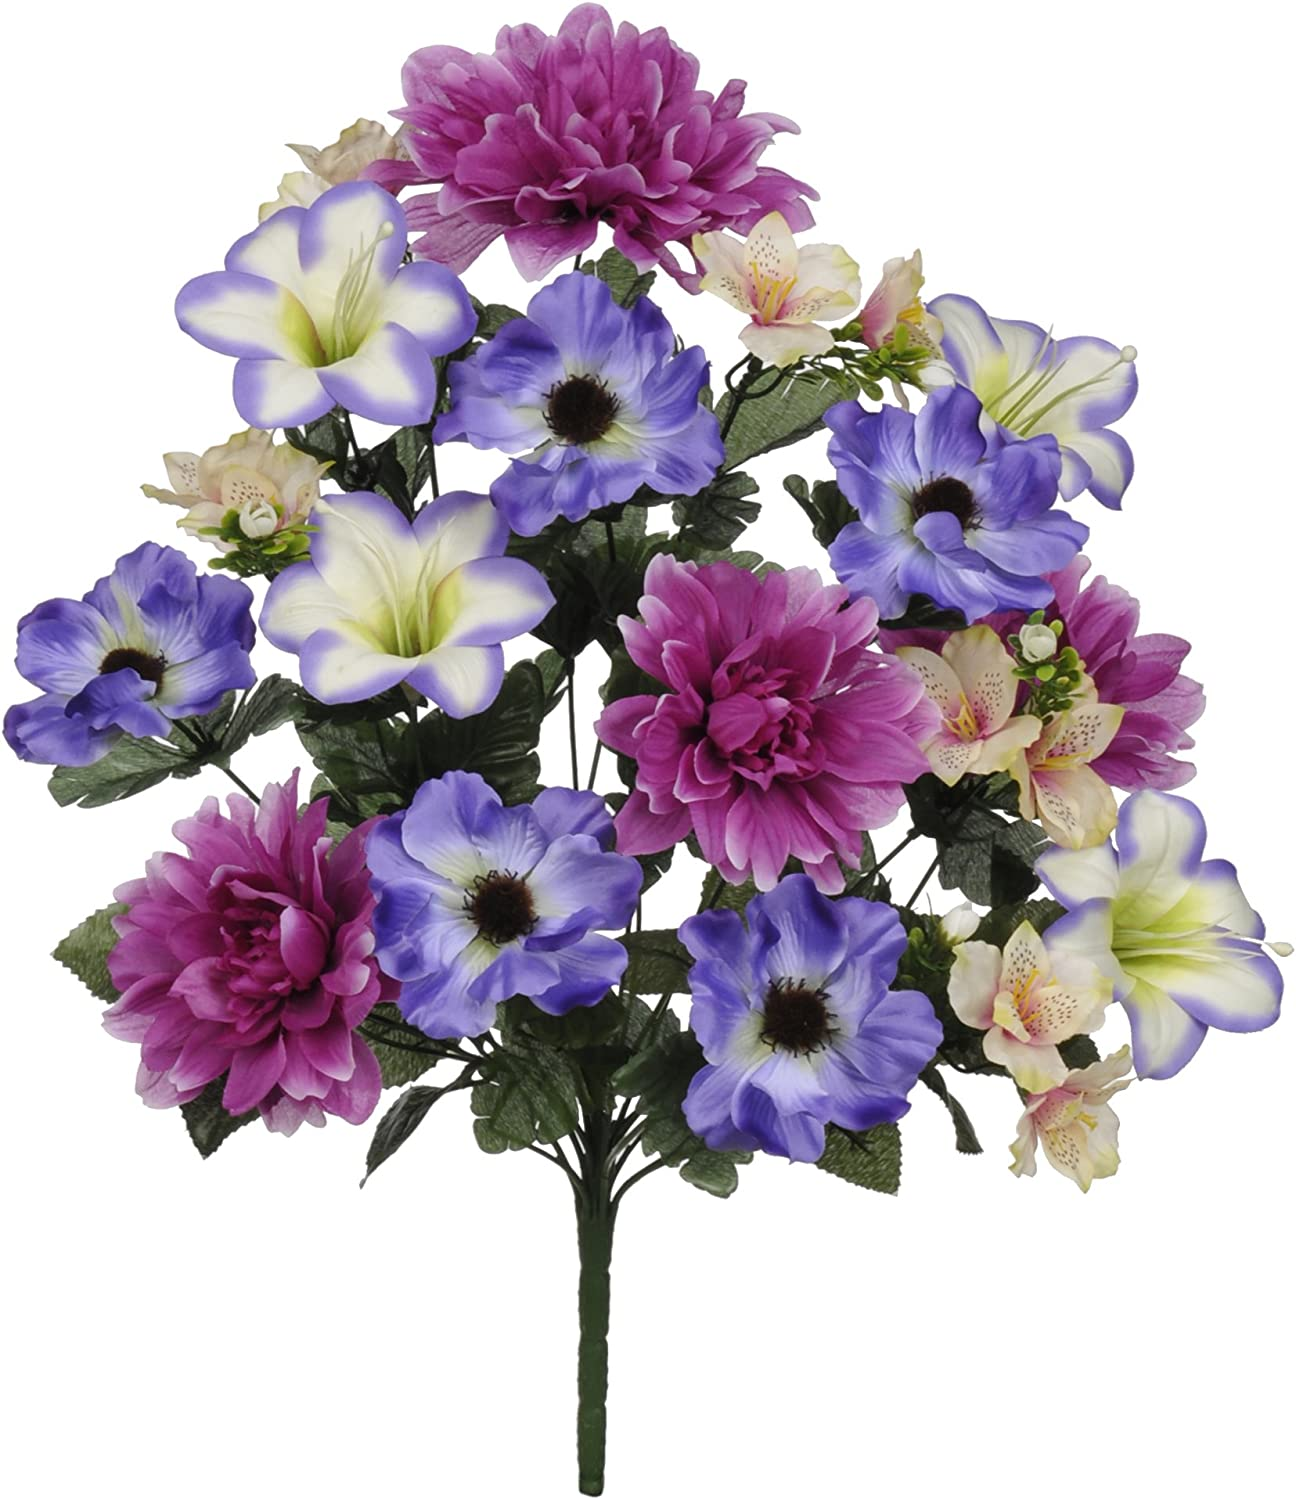 2 HEADS ARTIFICIAL SILK FLOWERS......TALL 84cm LISIANTHUS SPRAY IN PURPLE ...